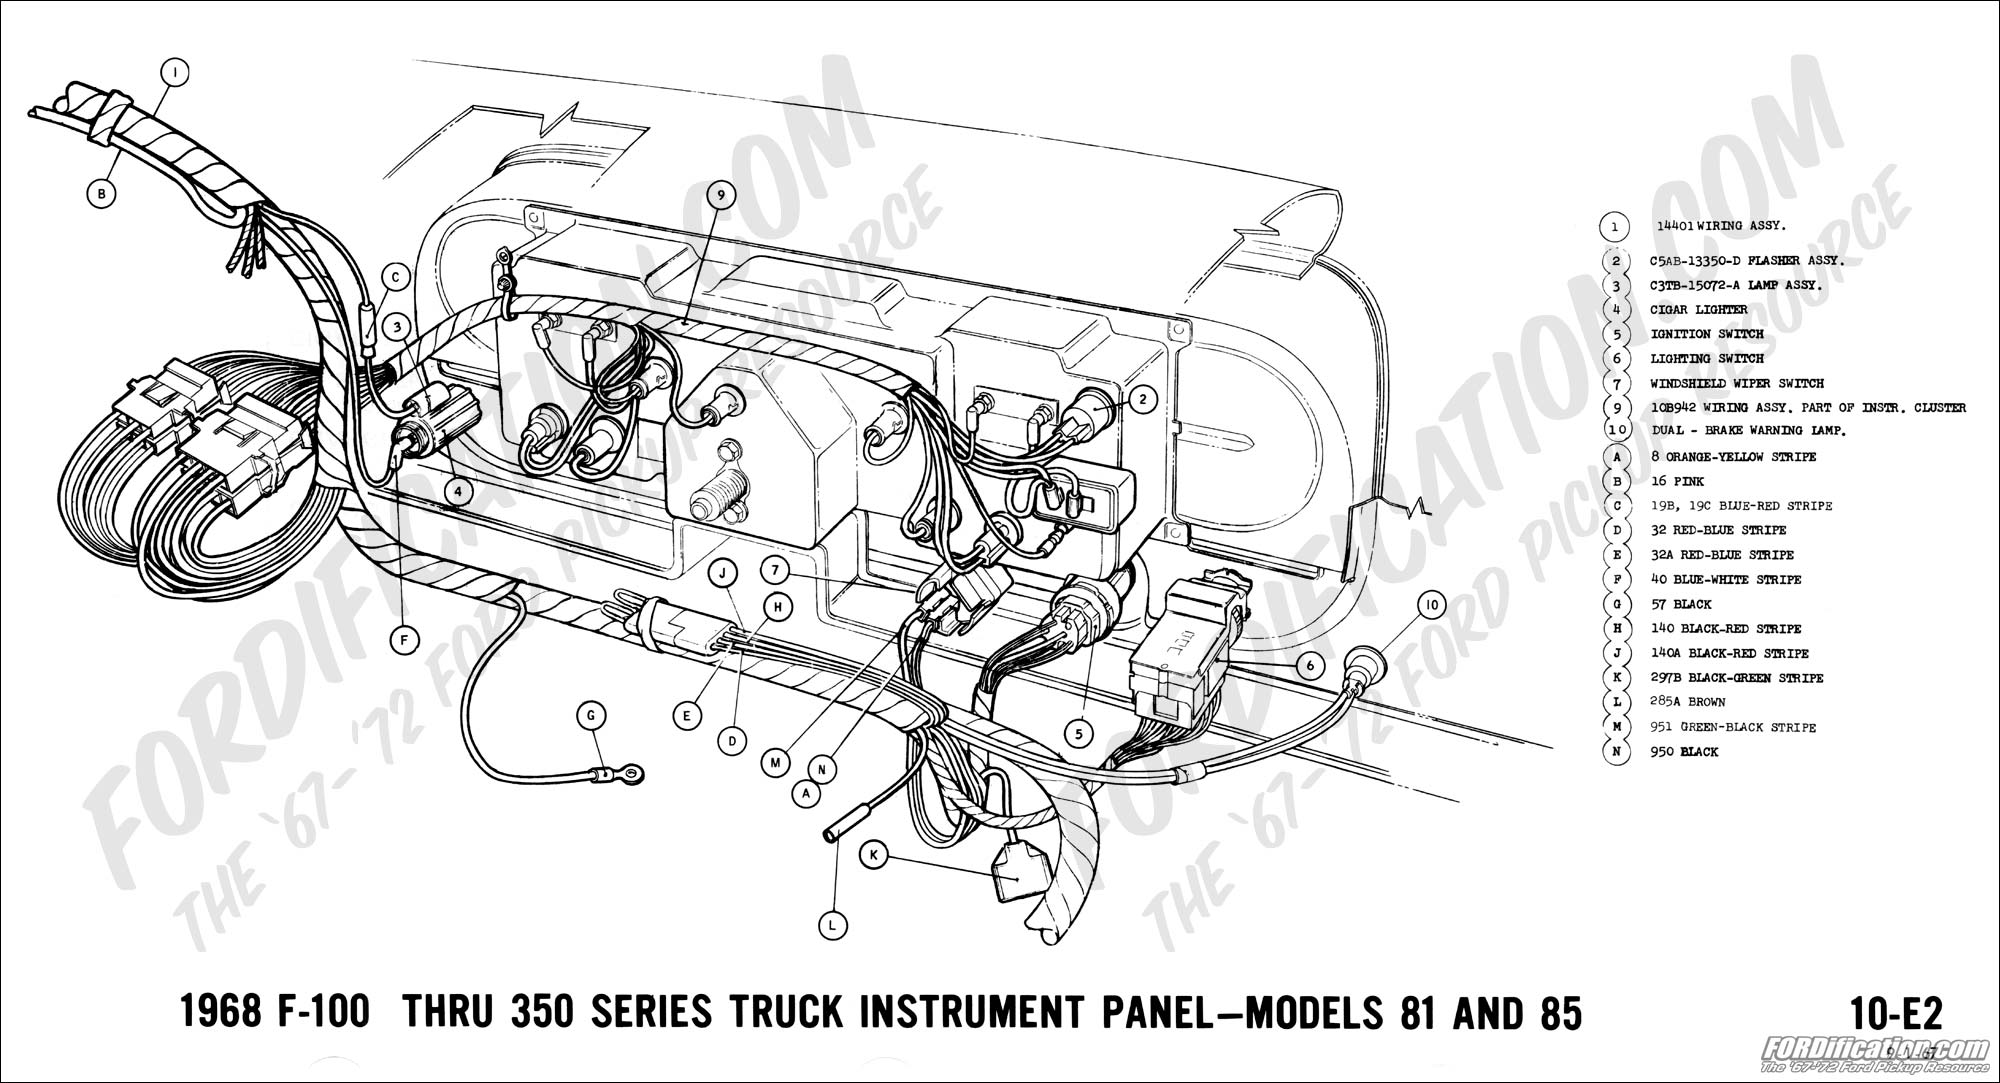 72 Super Beetle Wiring Diagram. Wiring. Wiring Diagrams Instructions